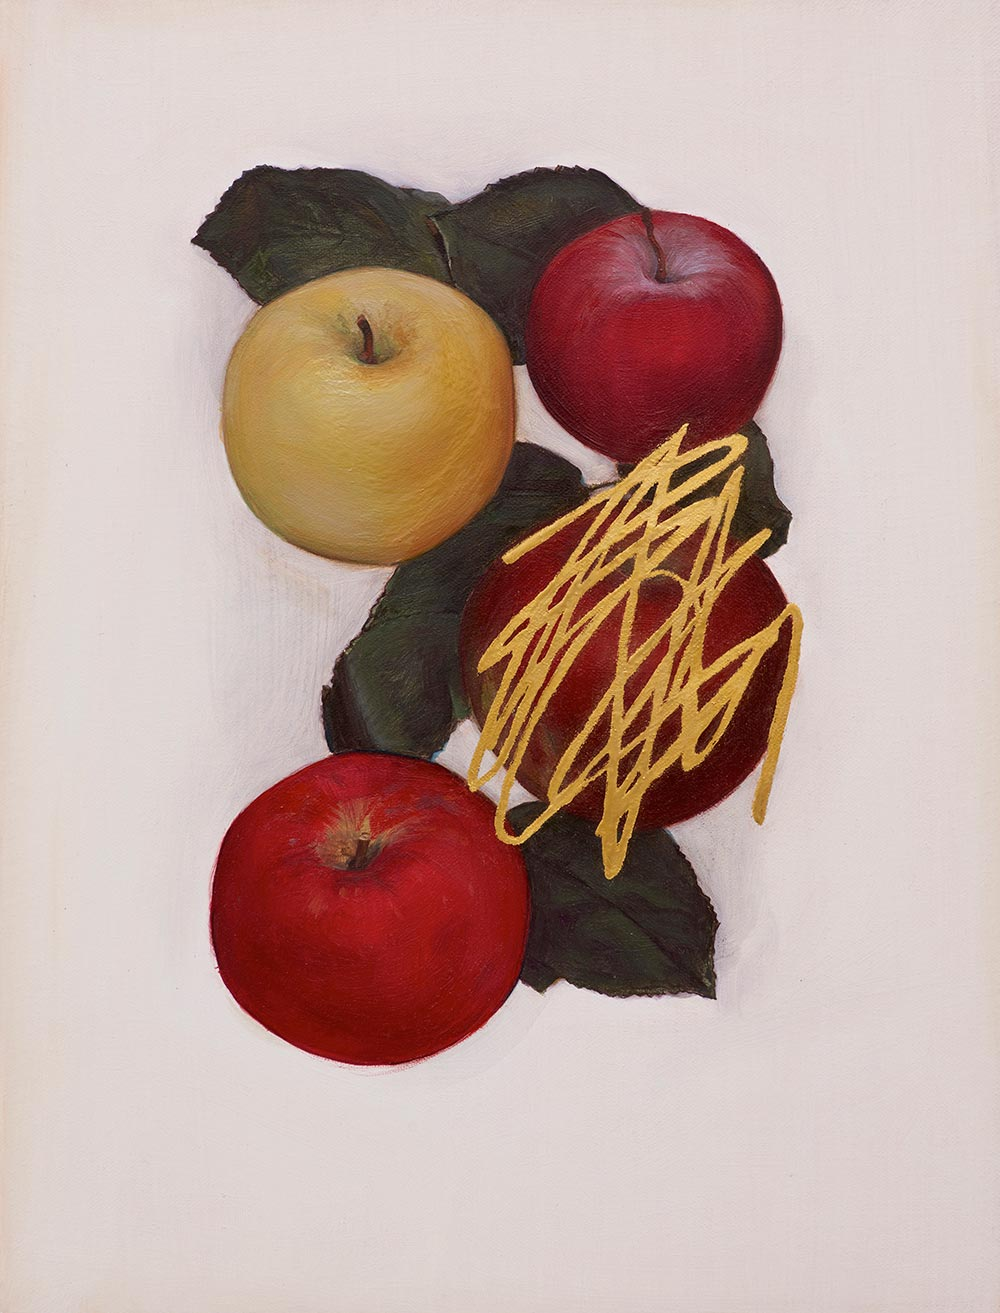 © Jen Mazza, Untitled (4 Apples, Gold), 2014